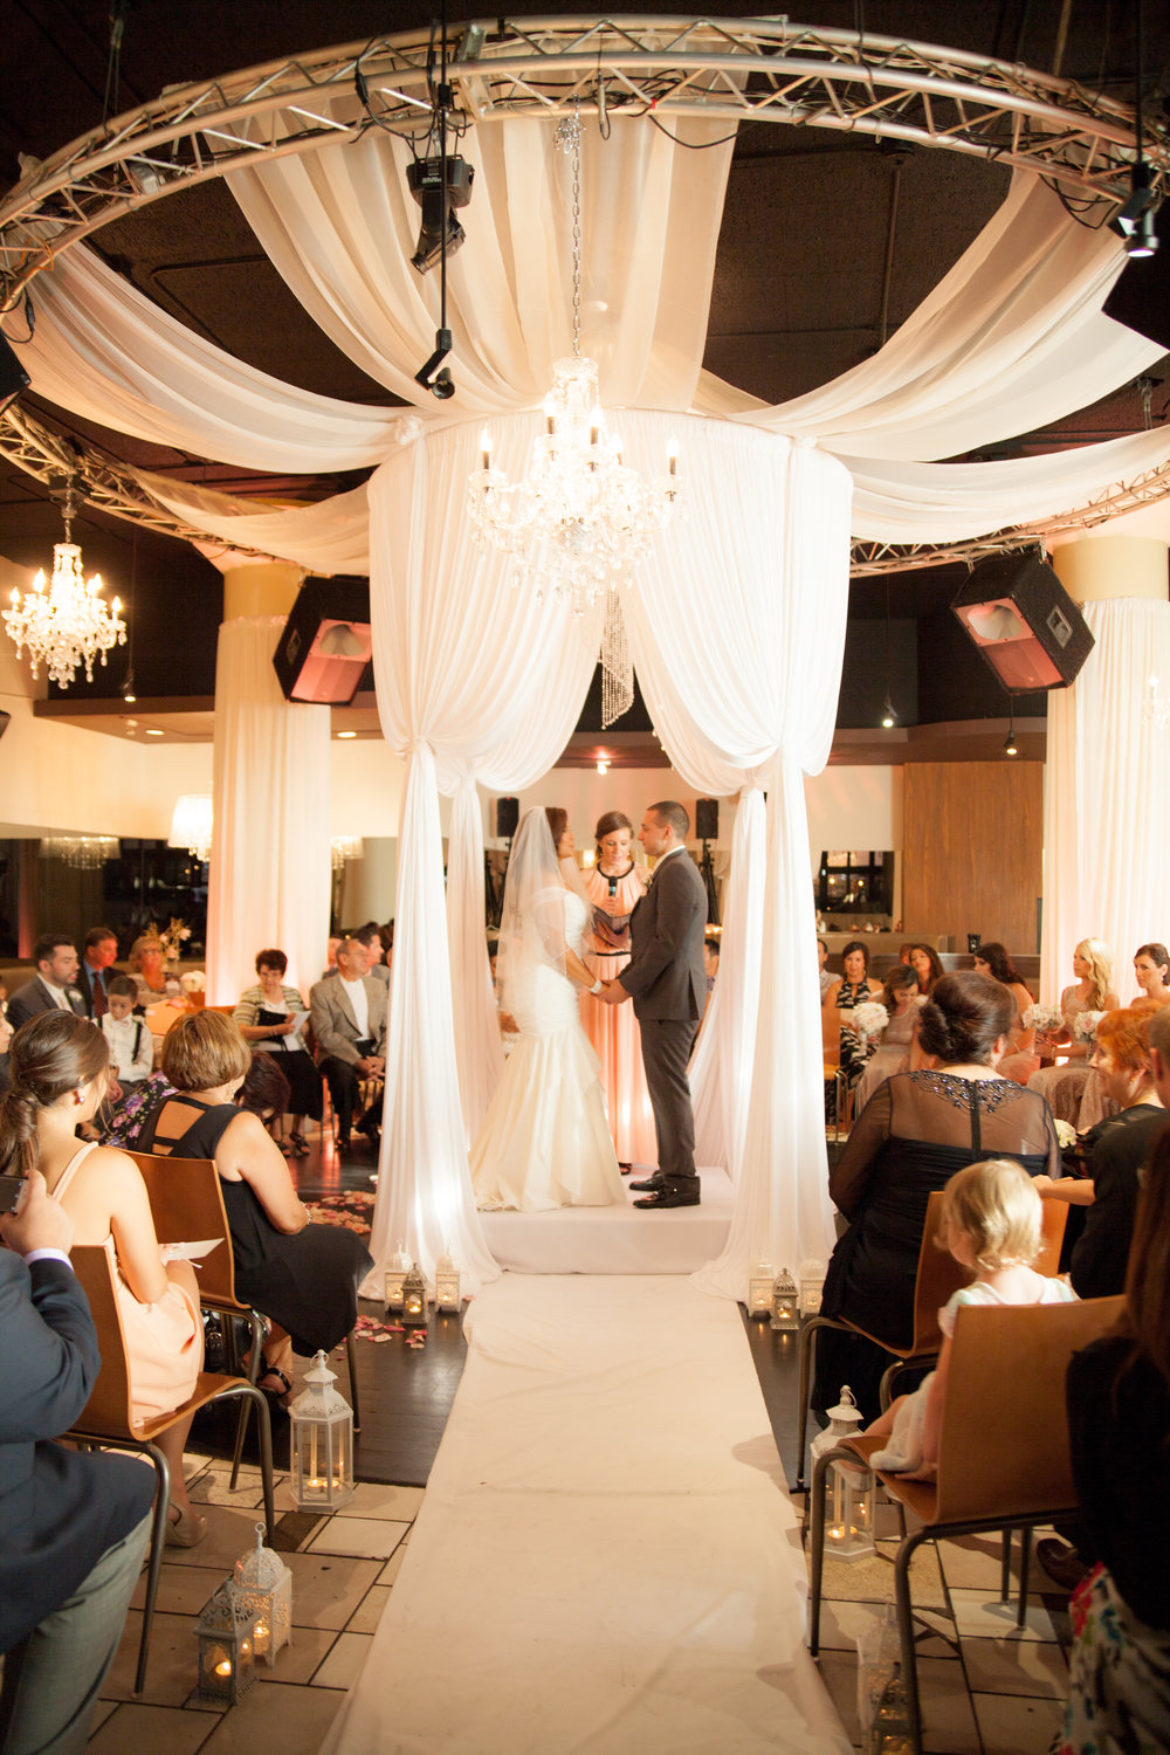 Elegant_Event_Lighting_Chicago_Nacional_27_Circular_Chuppah